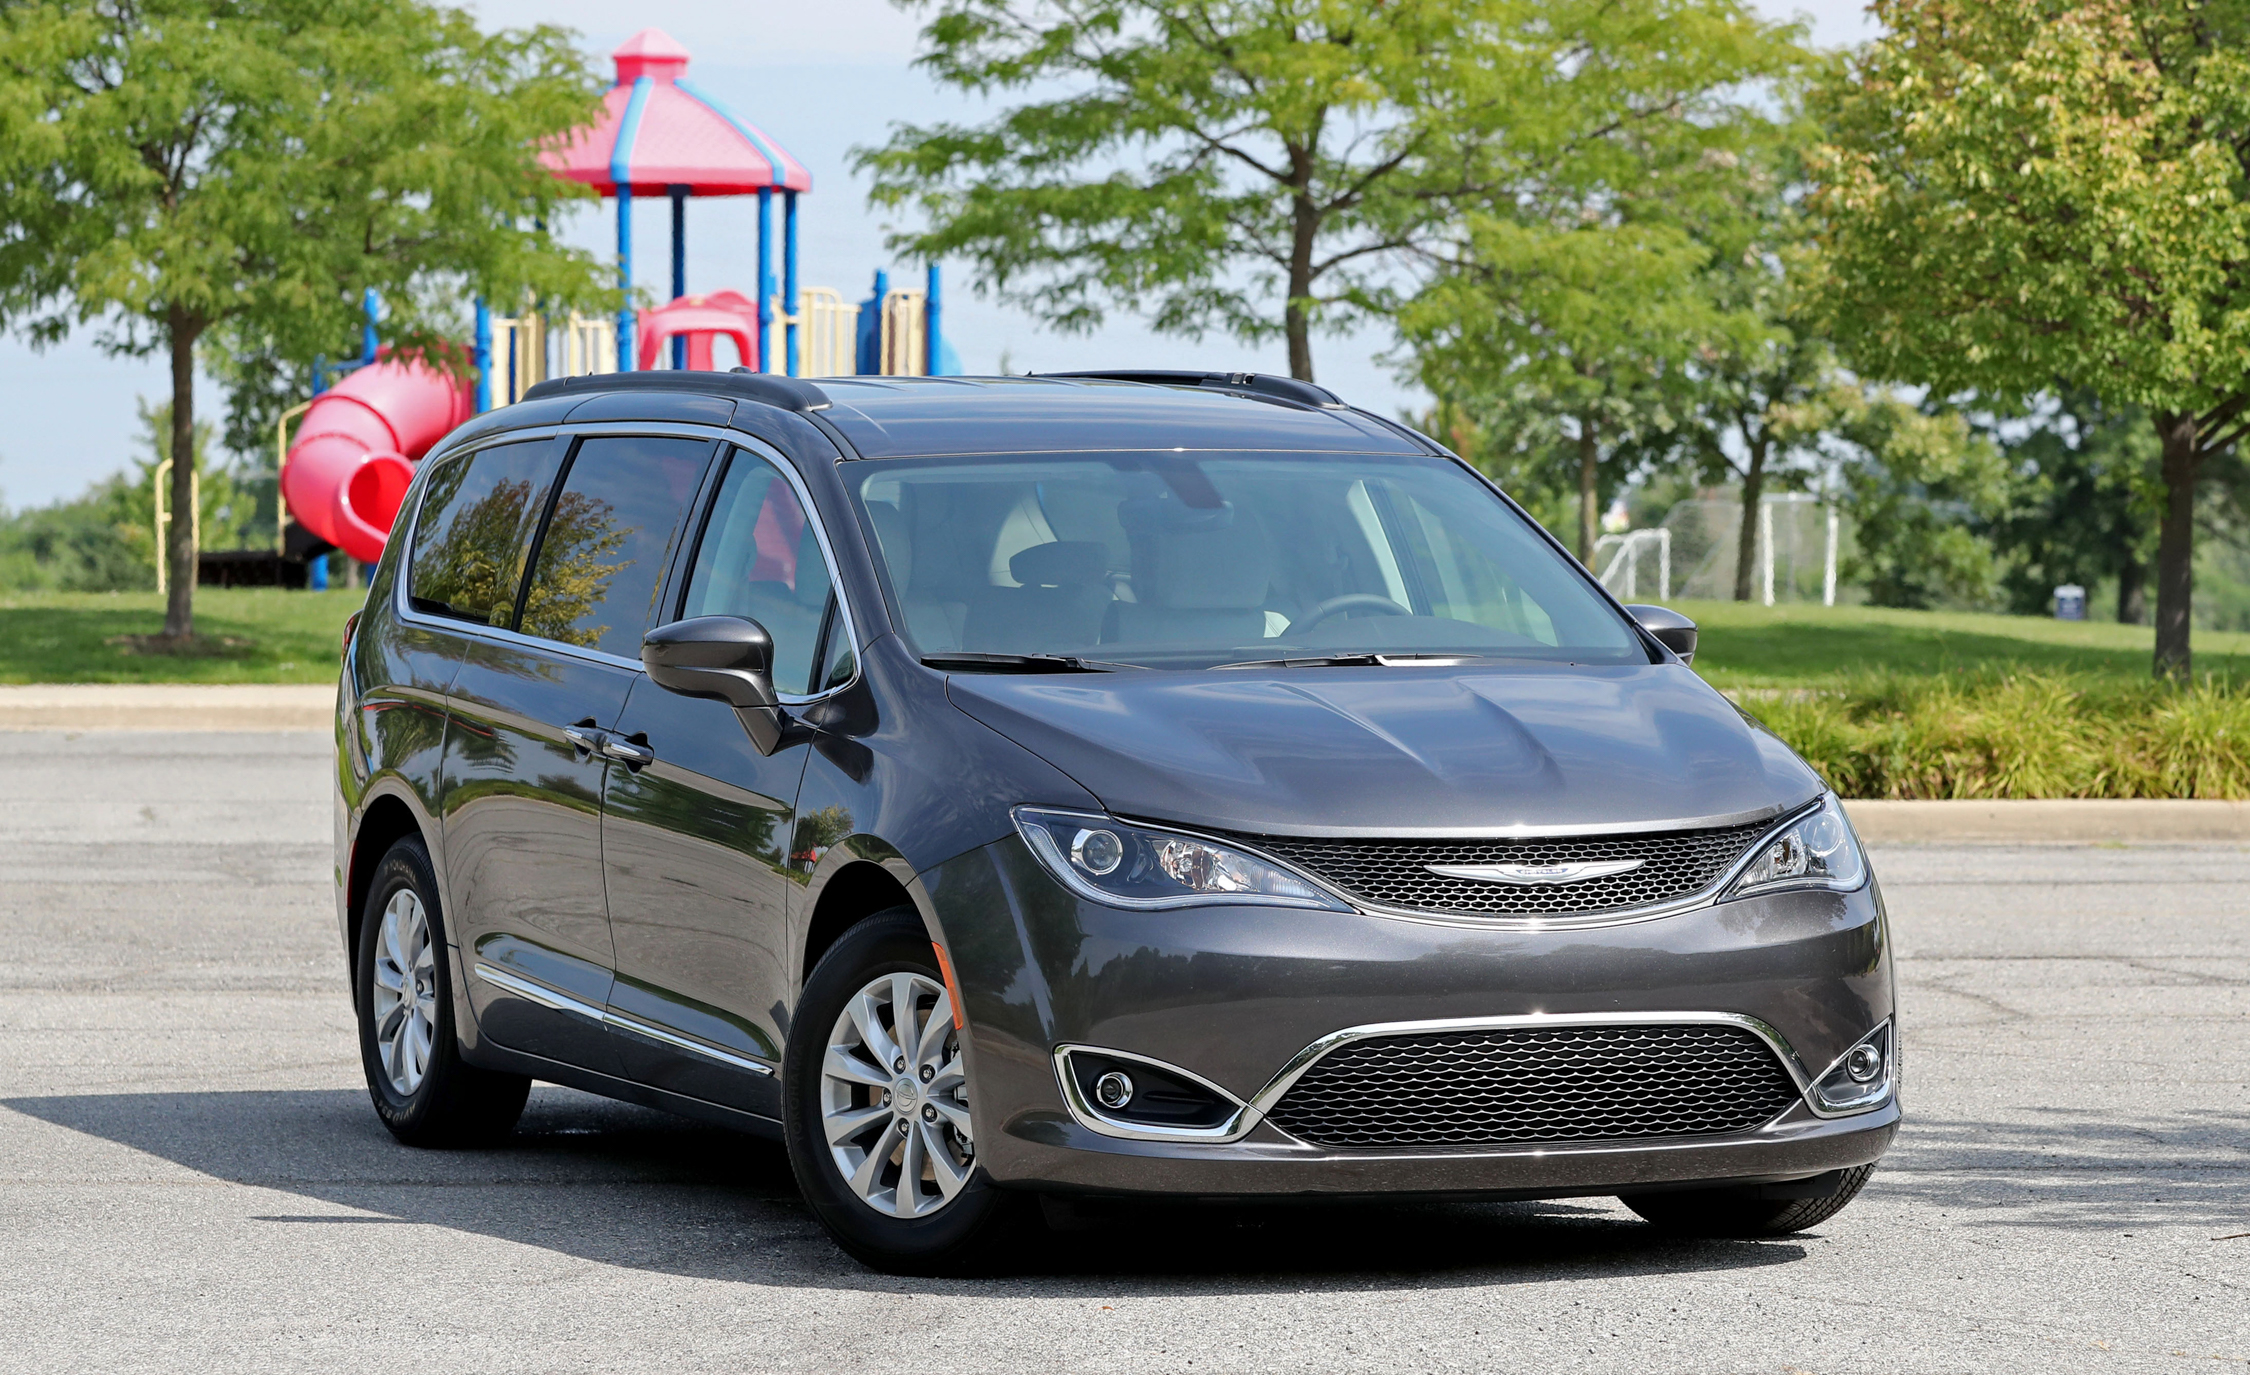 2017 chrysler pacifica cars exclusive videos and photos updates. Black Bedroom Furniture Sets. Home Design Ideas